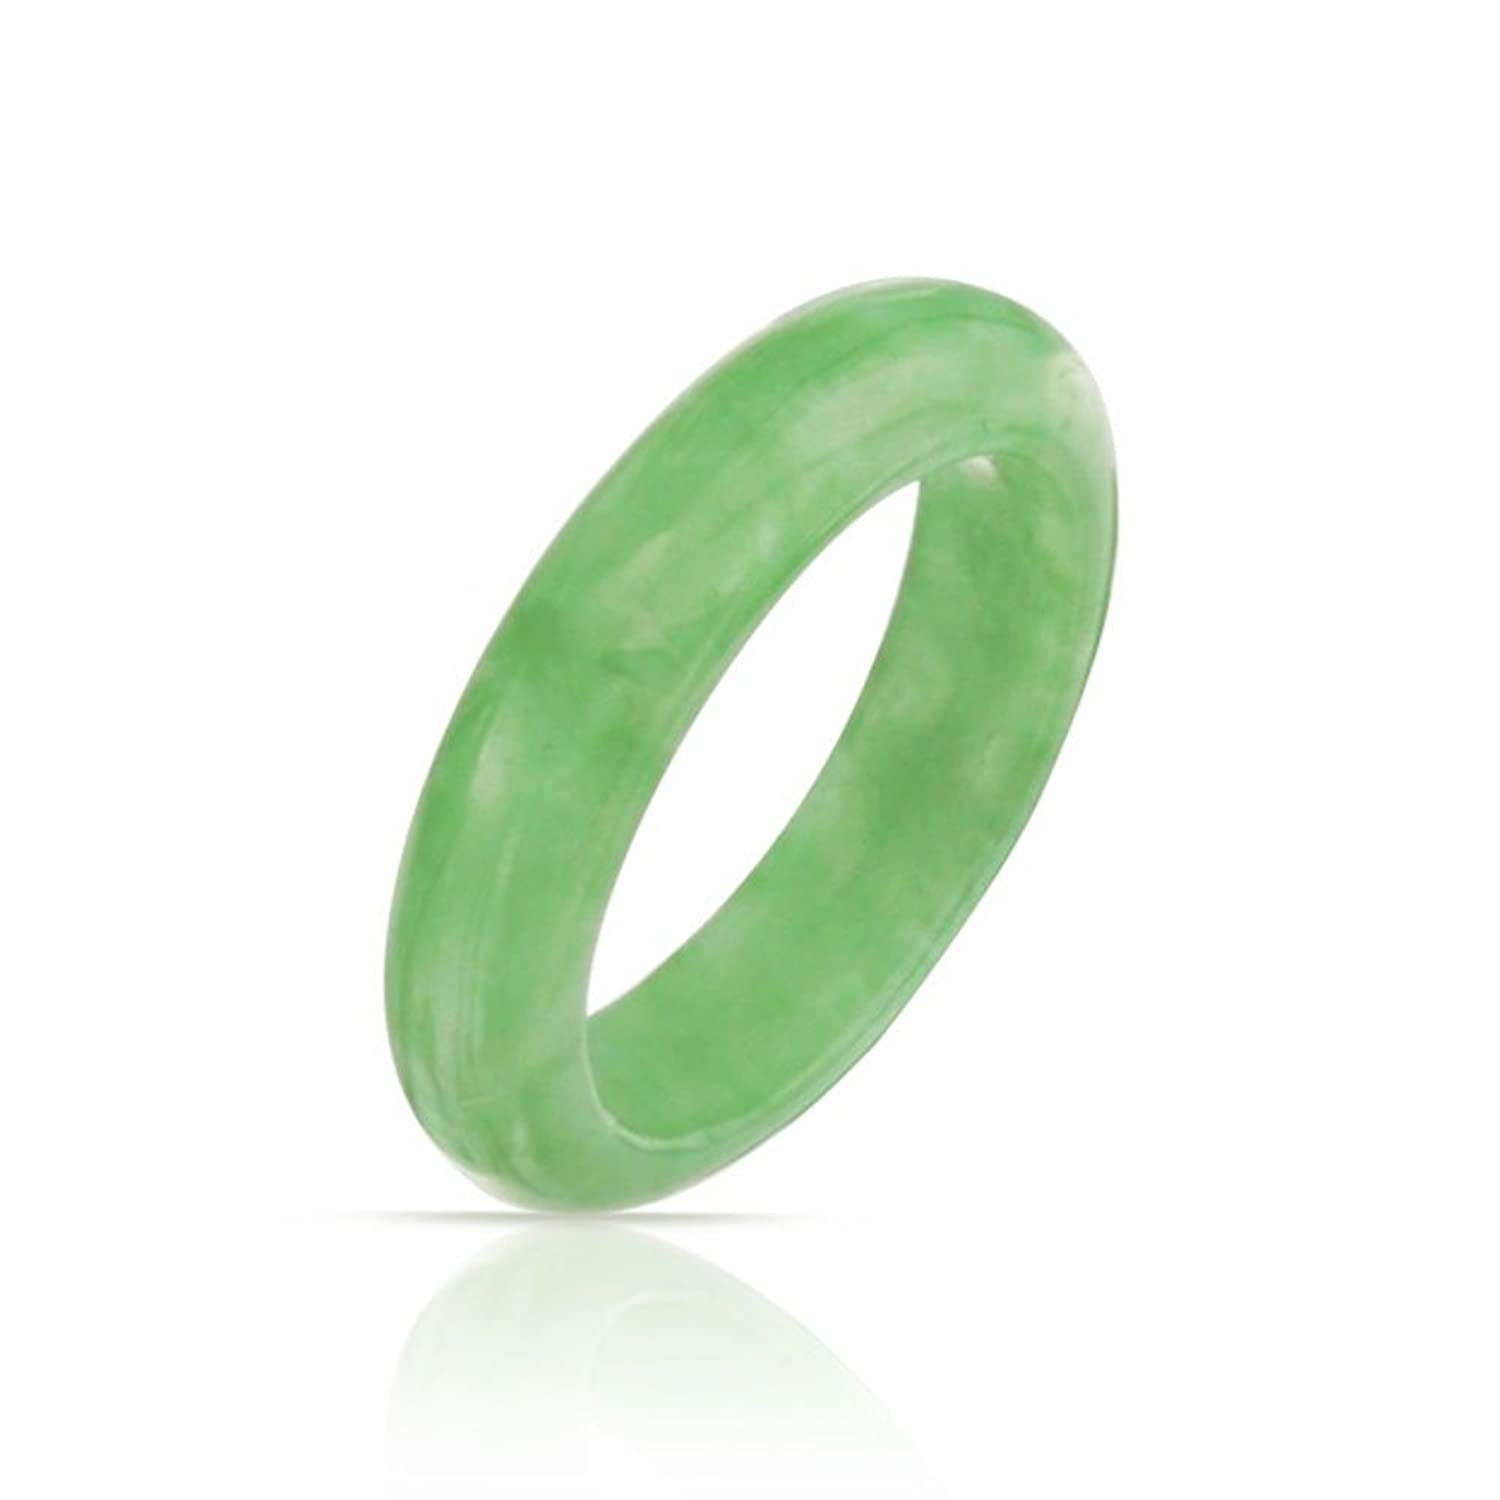 Bling Jewelry teñido de verde jade Gemstone banda moderno anillo apilable mm